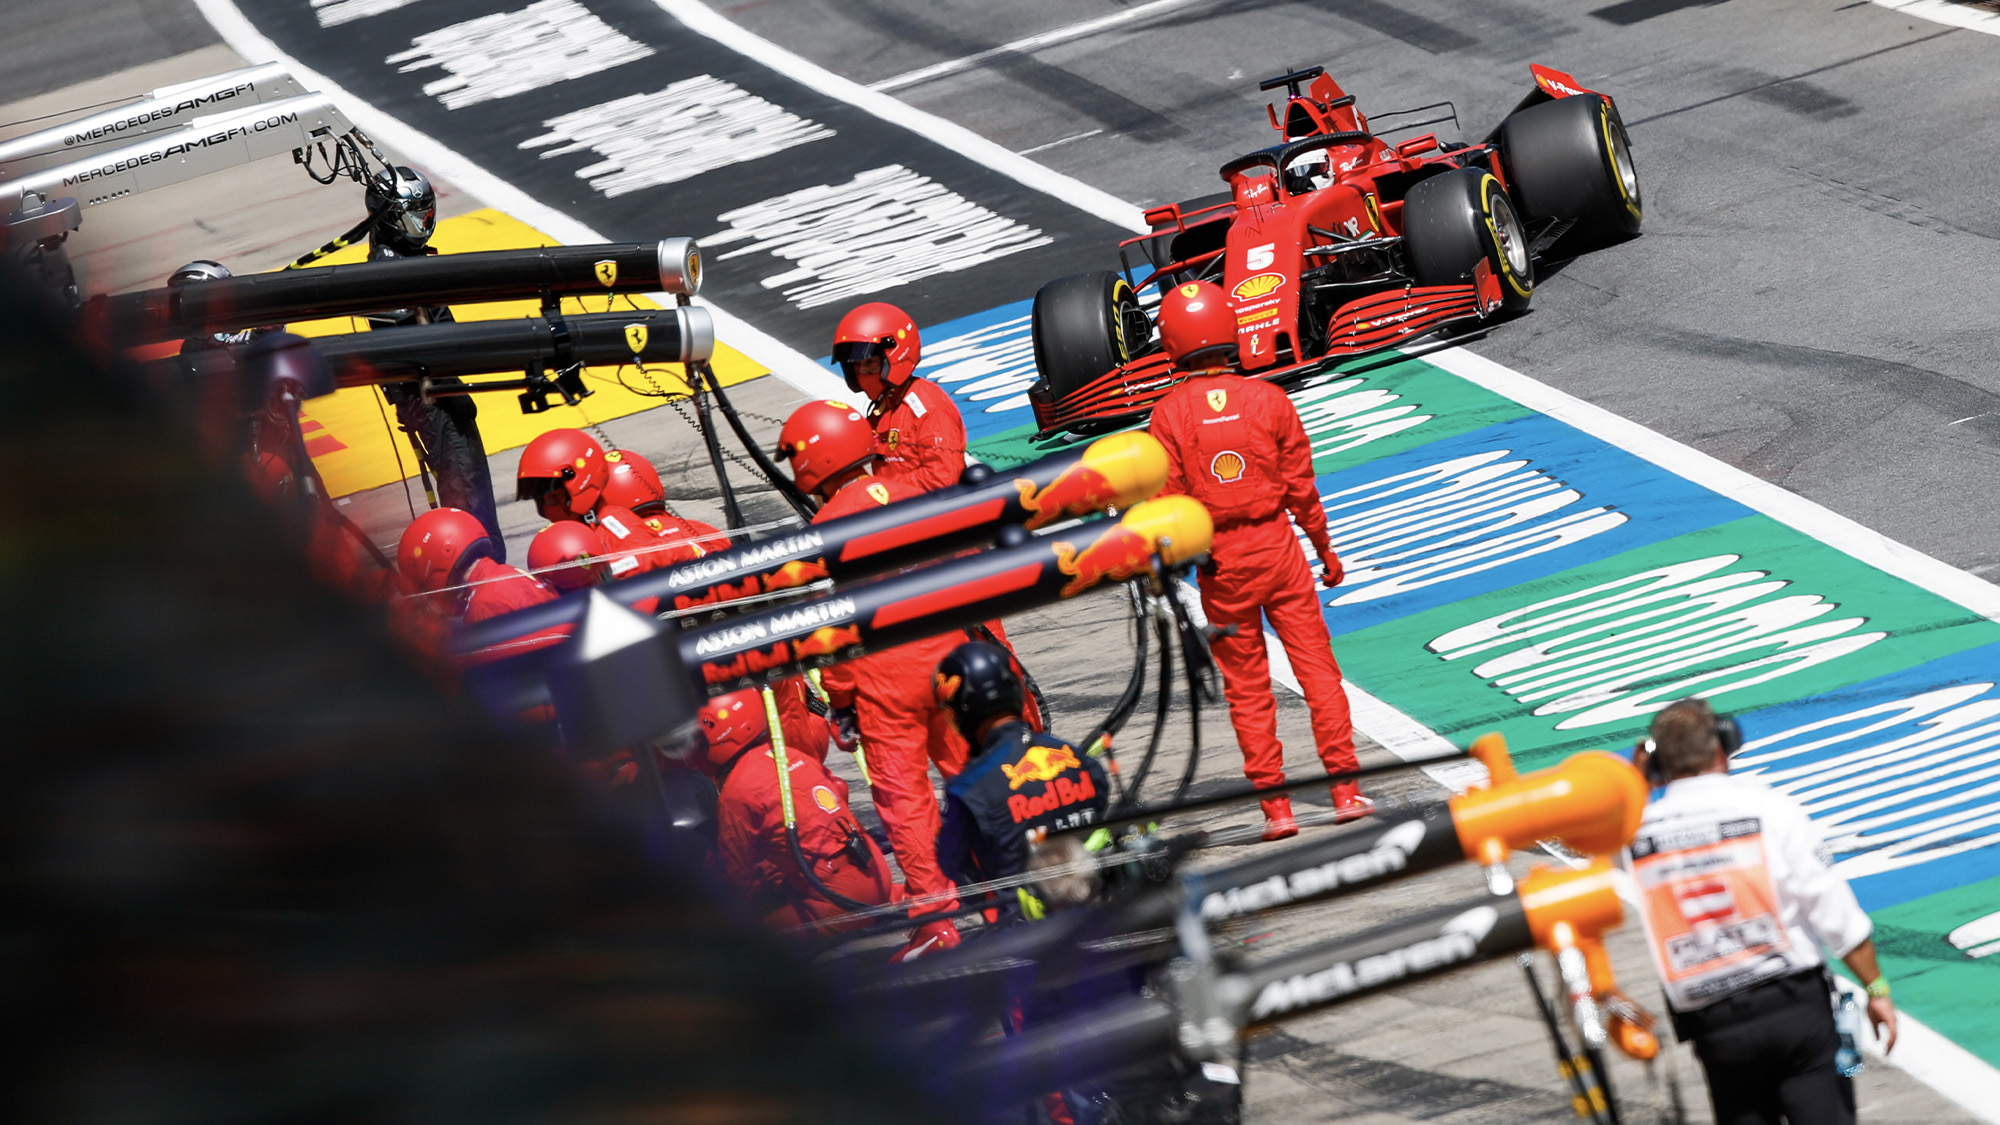 Sebastian Vettel pulls i to the oits with rear wing damage after a collision in the 2020 F1 Styrian Grand Prix in Austria